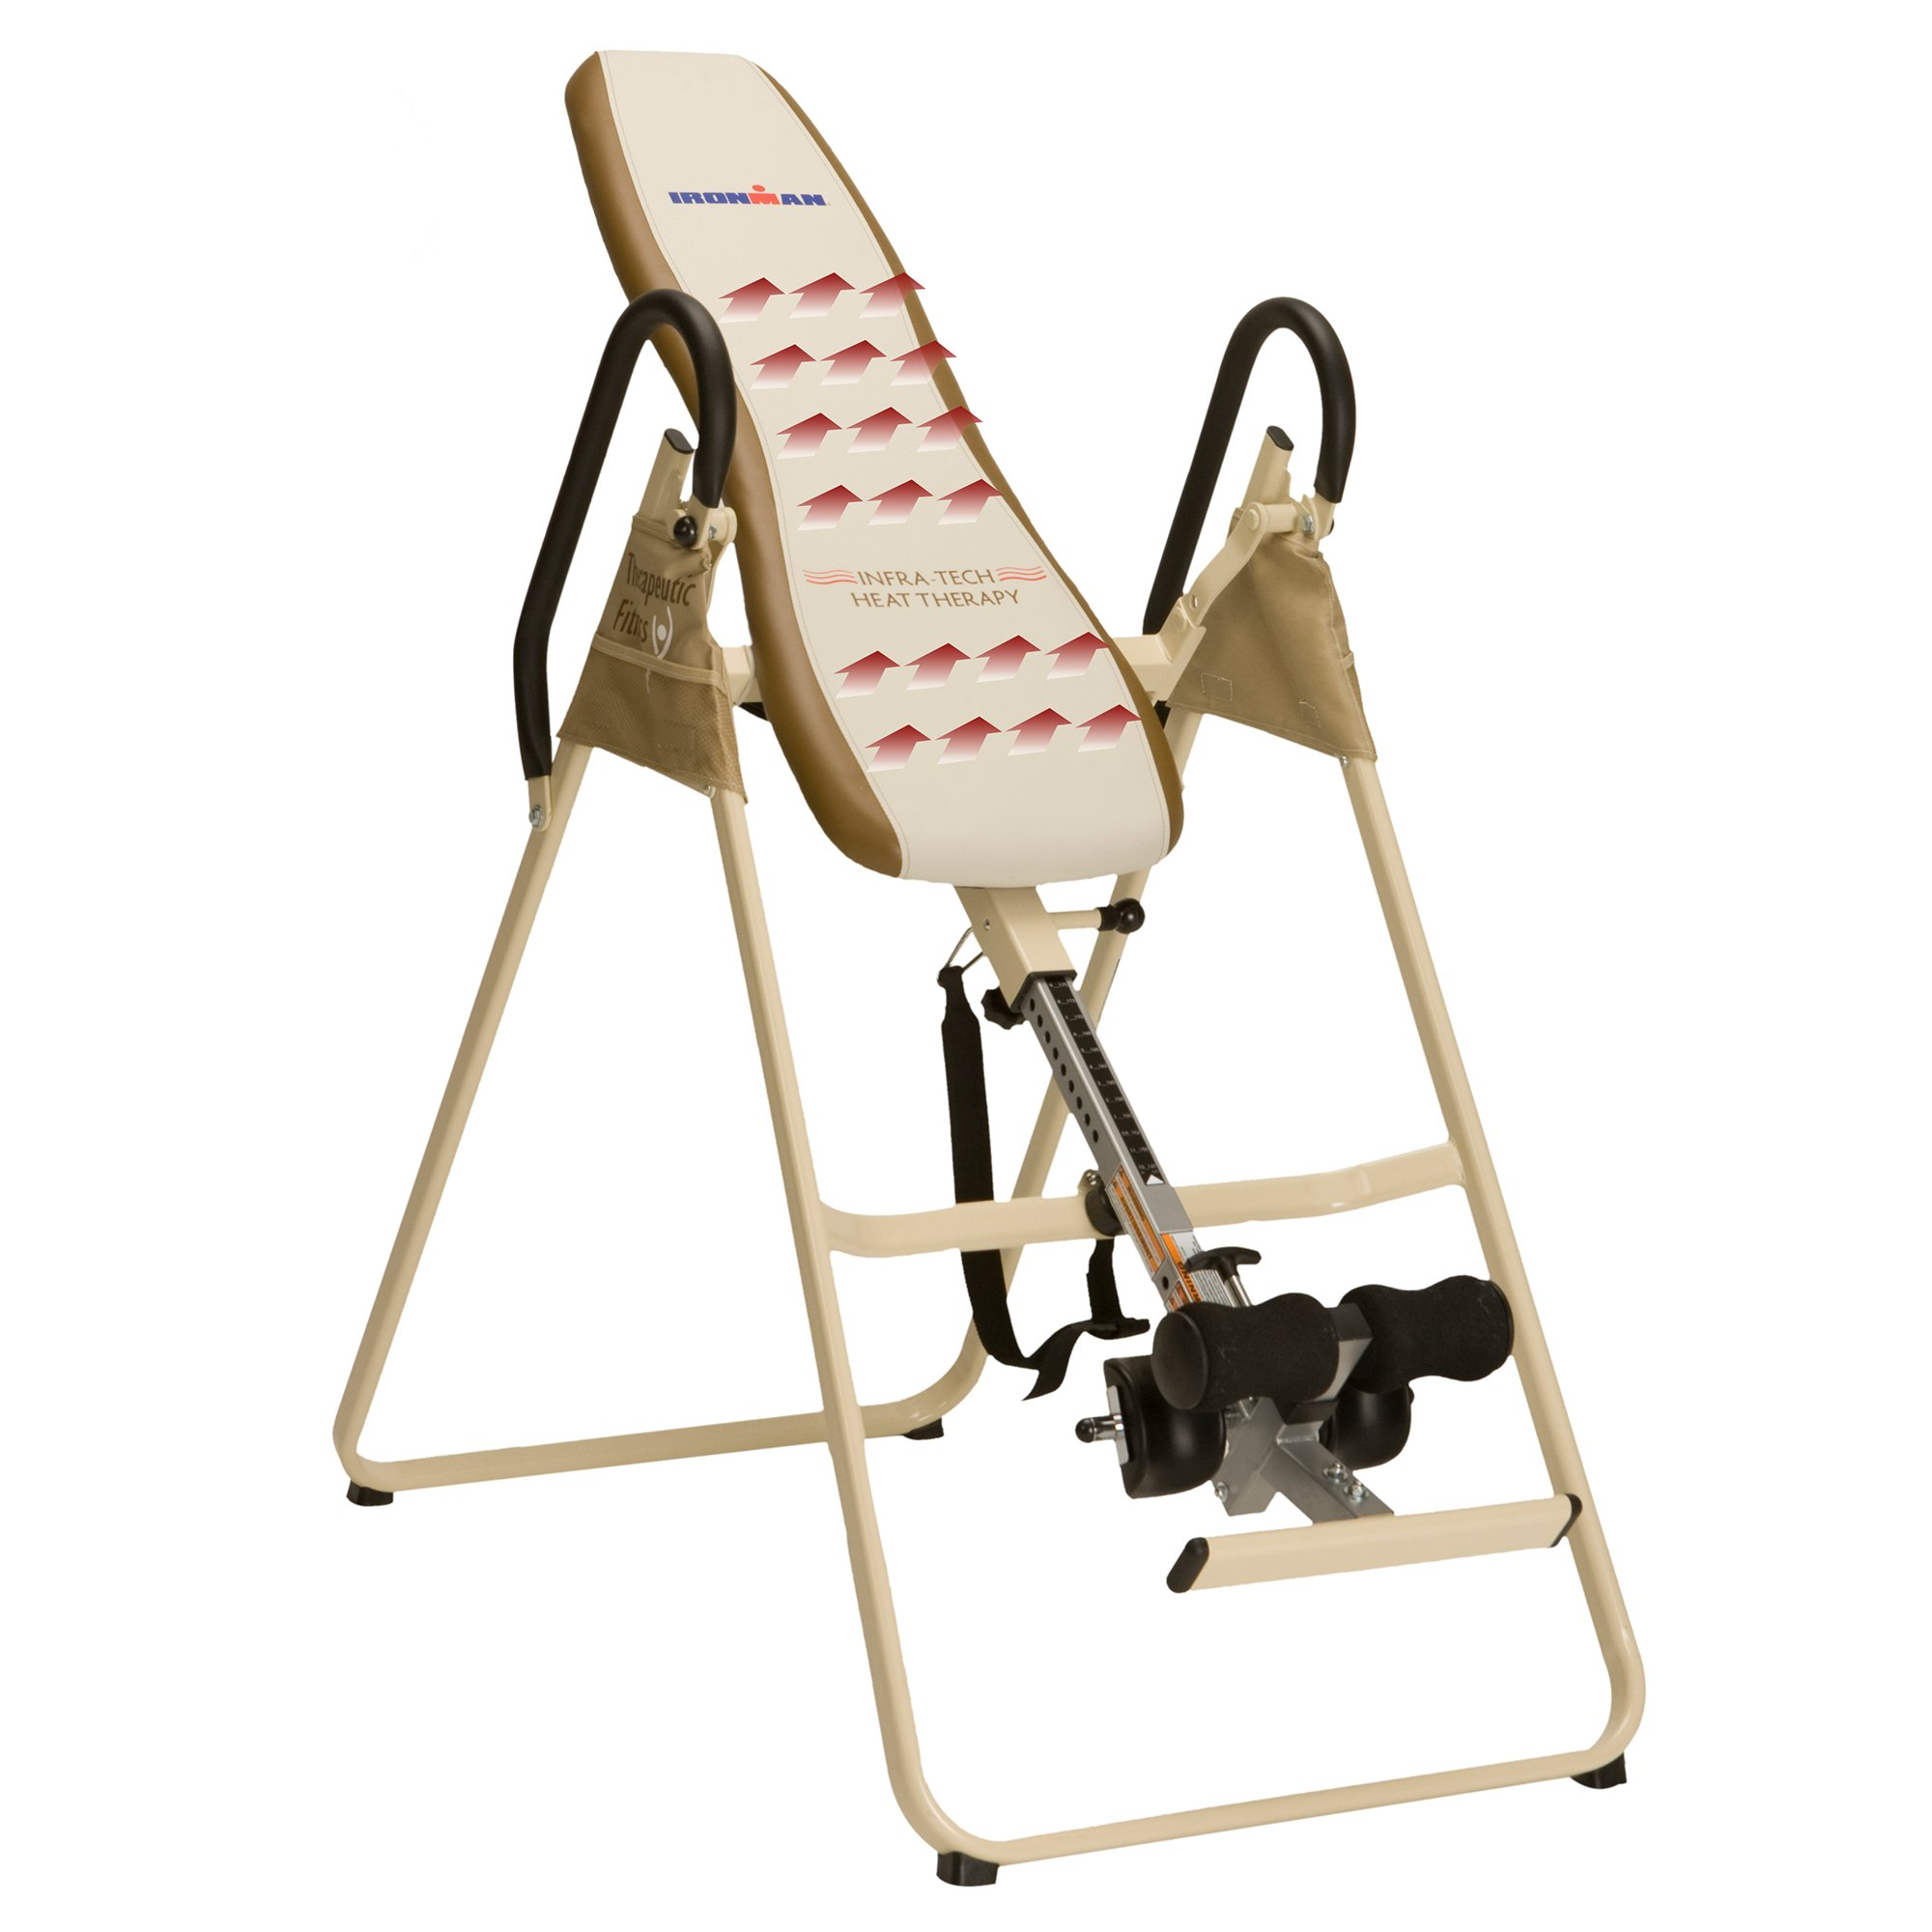 Ironman IFT 1000 Infrared Therapy Inversion Table by IRONMAN